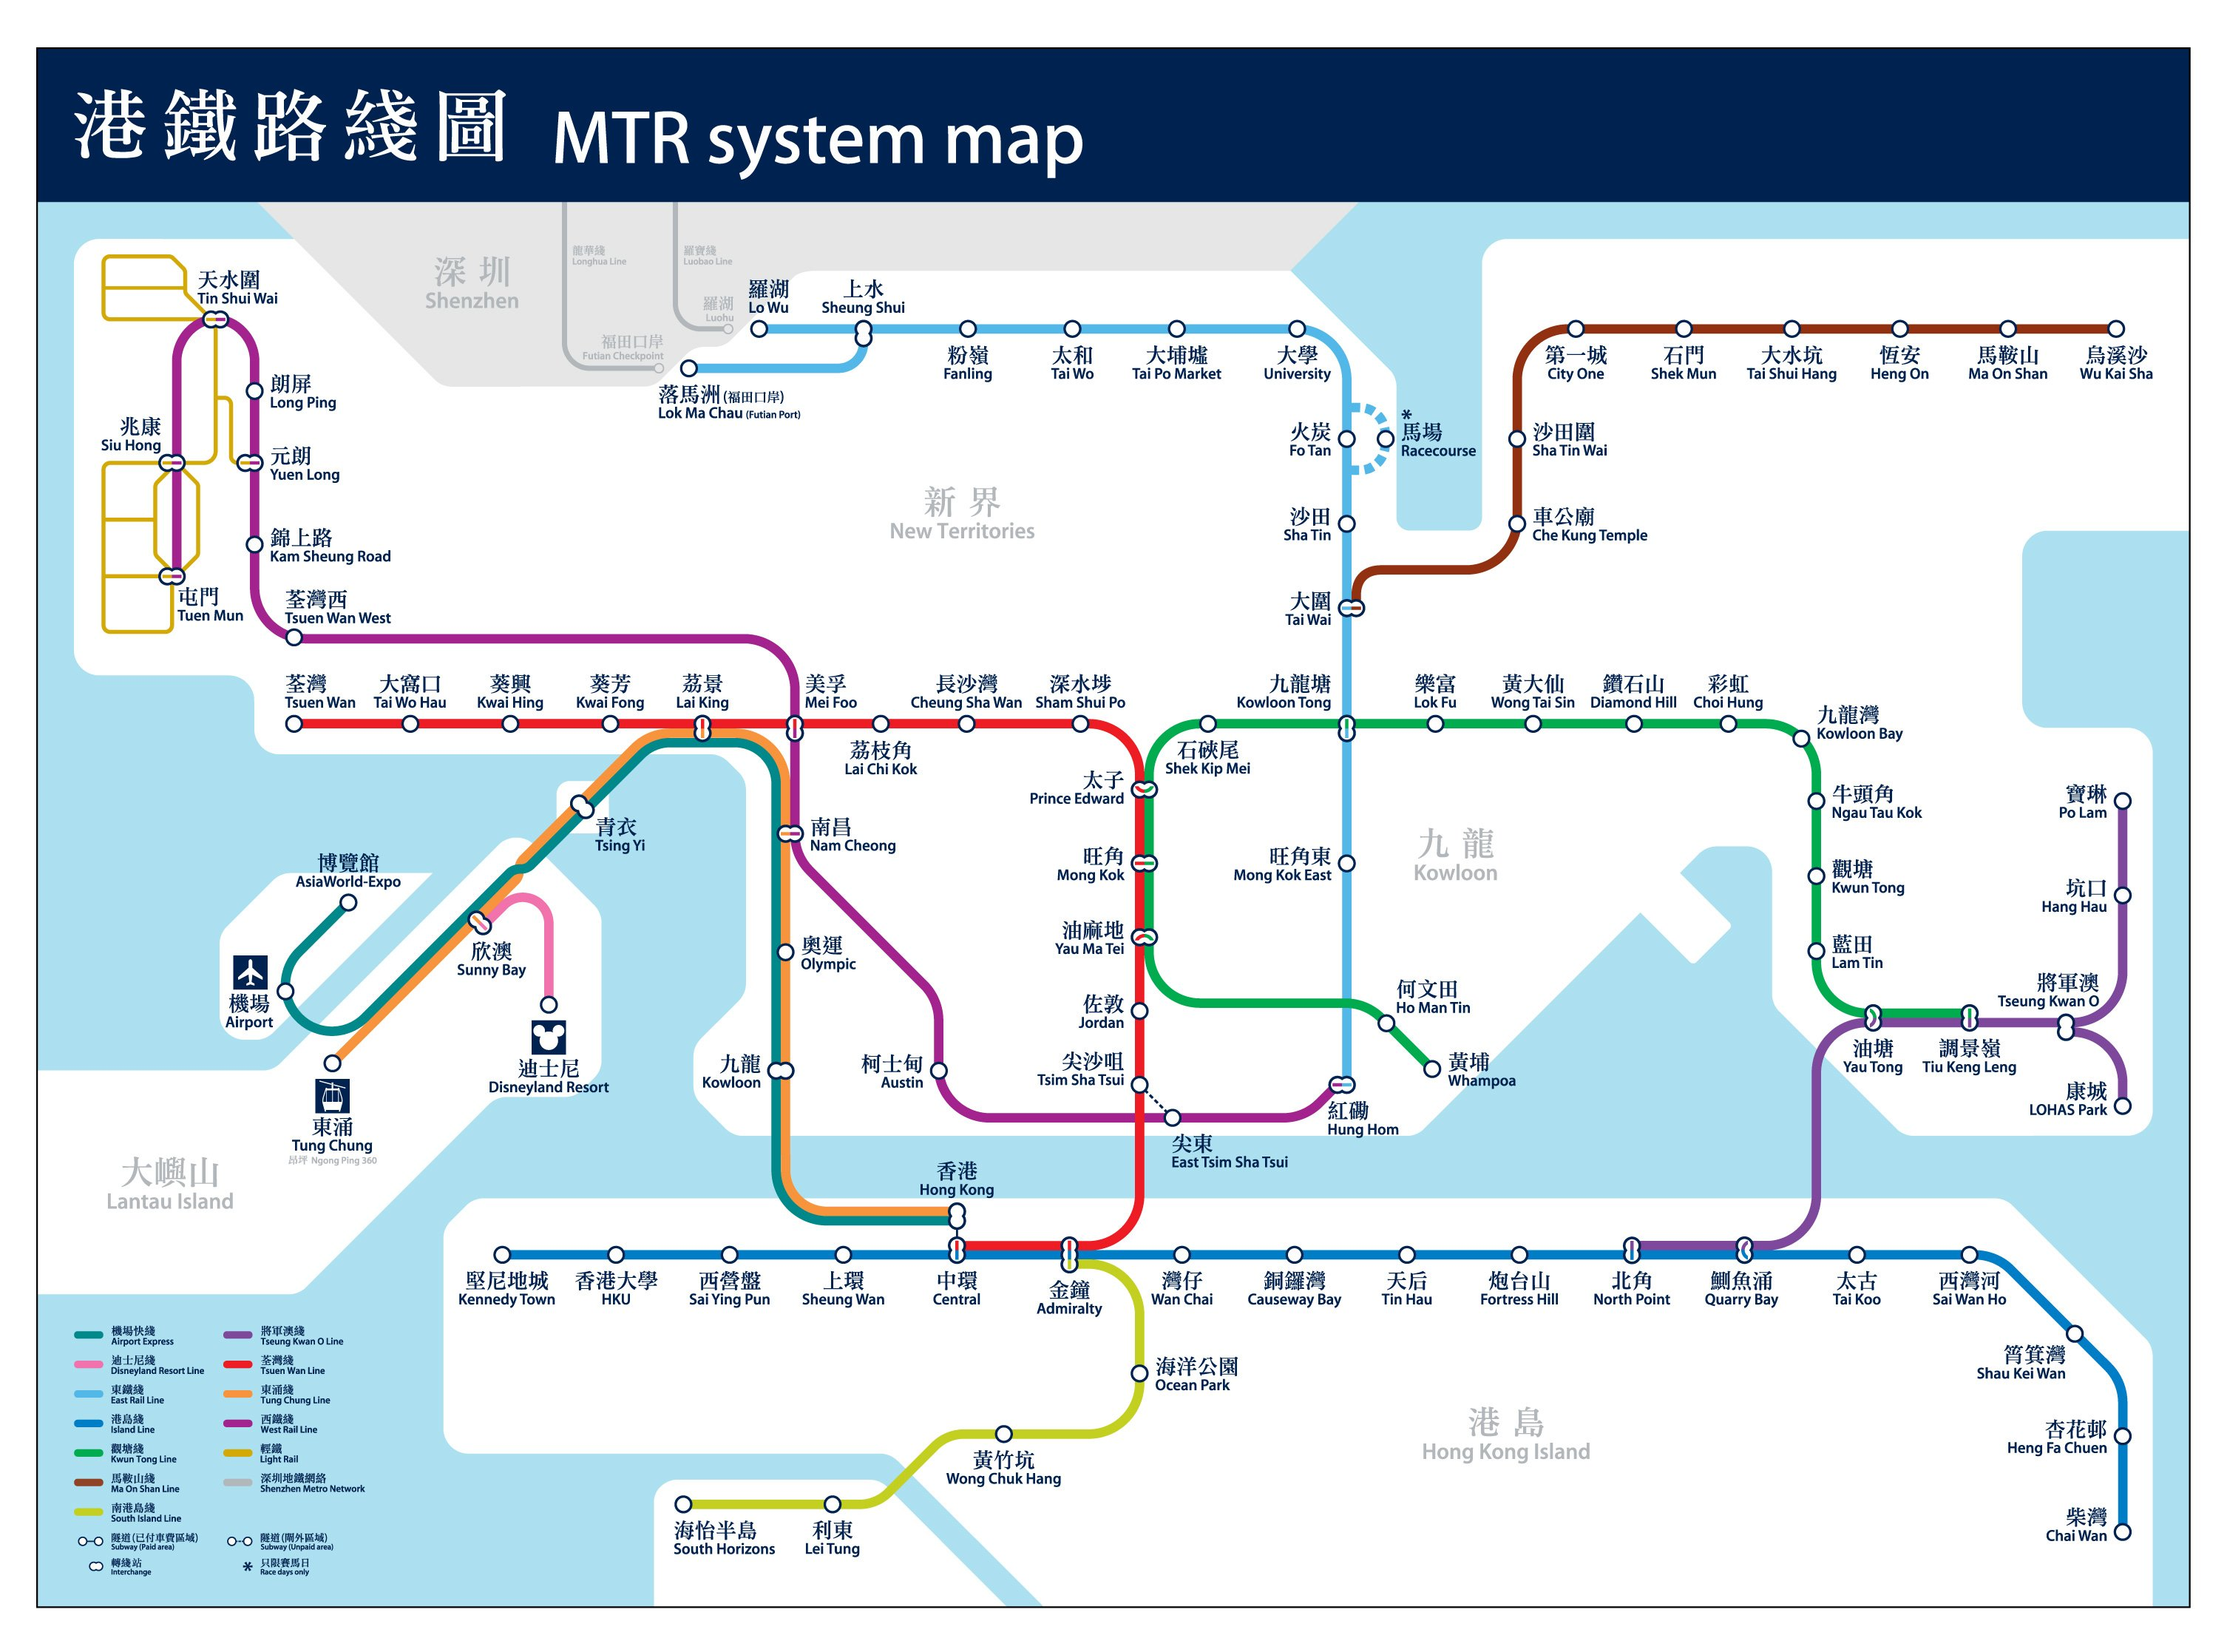 mtr system map source mtrcomhk click to see larger version